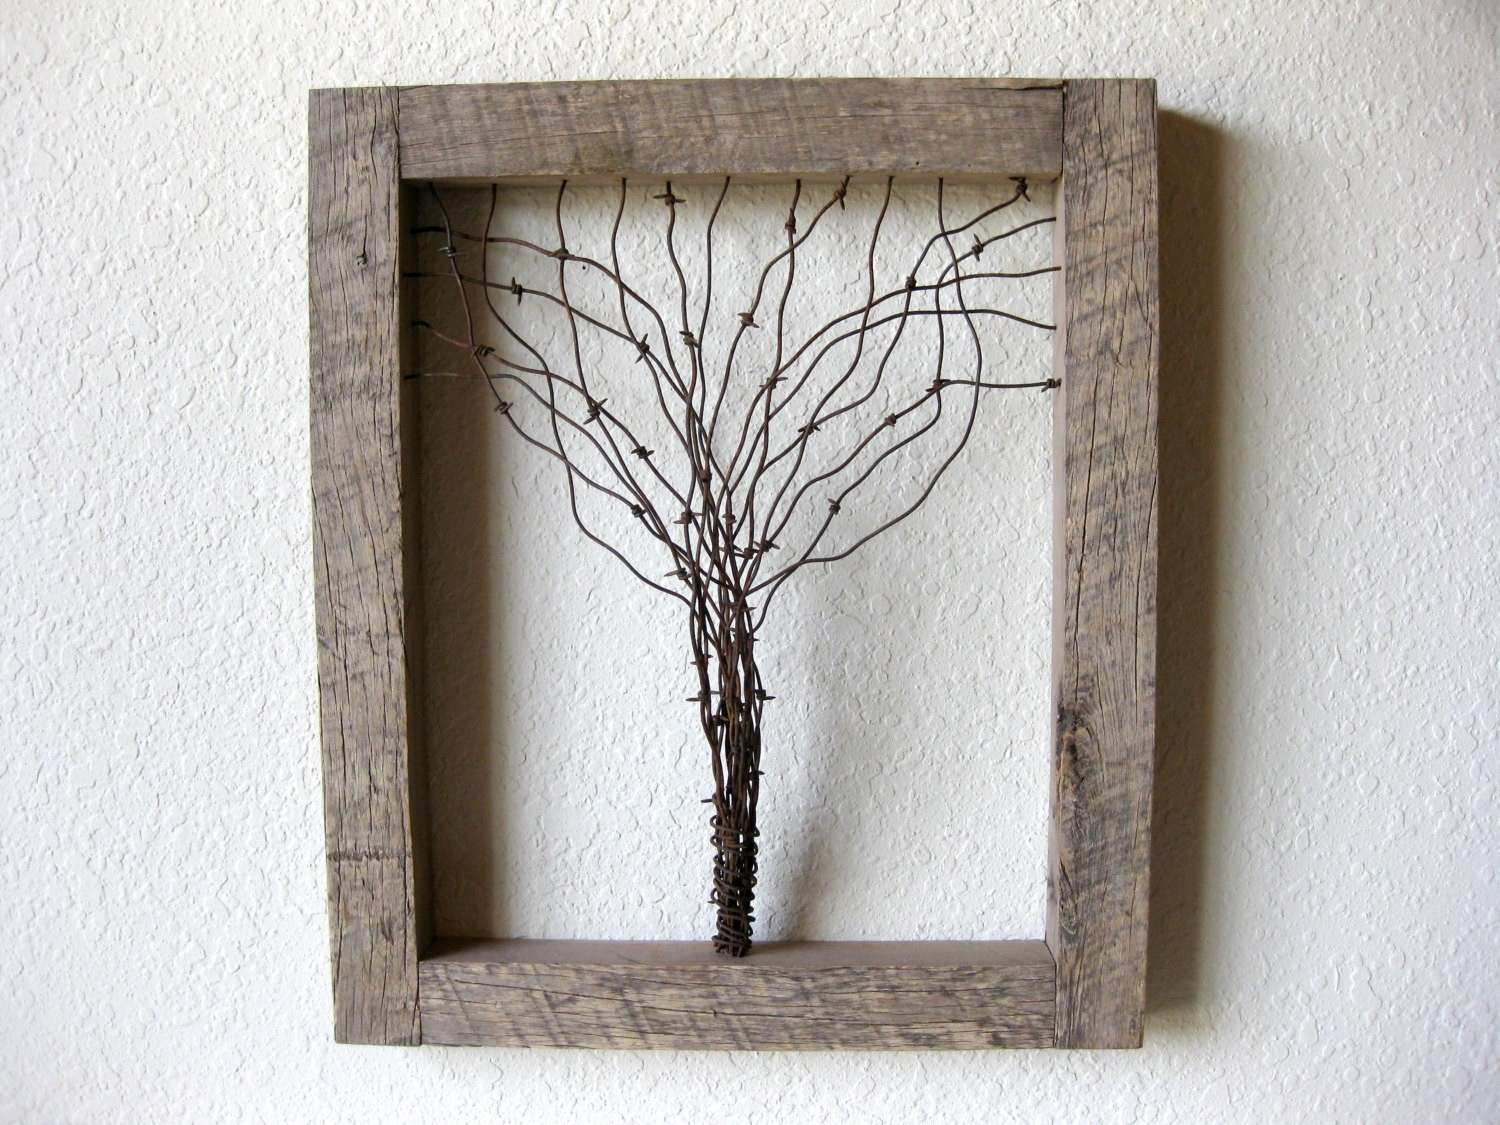 Barn Wood Wall Art Inspirational Reclaimed Barn Wood and Barbed Wire Tree Wall Art